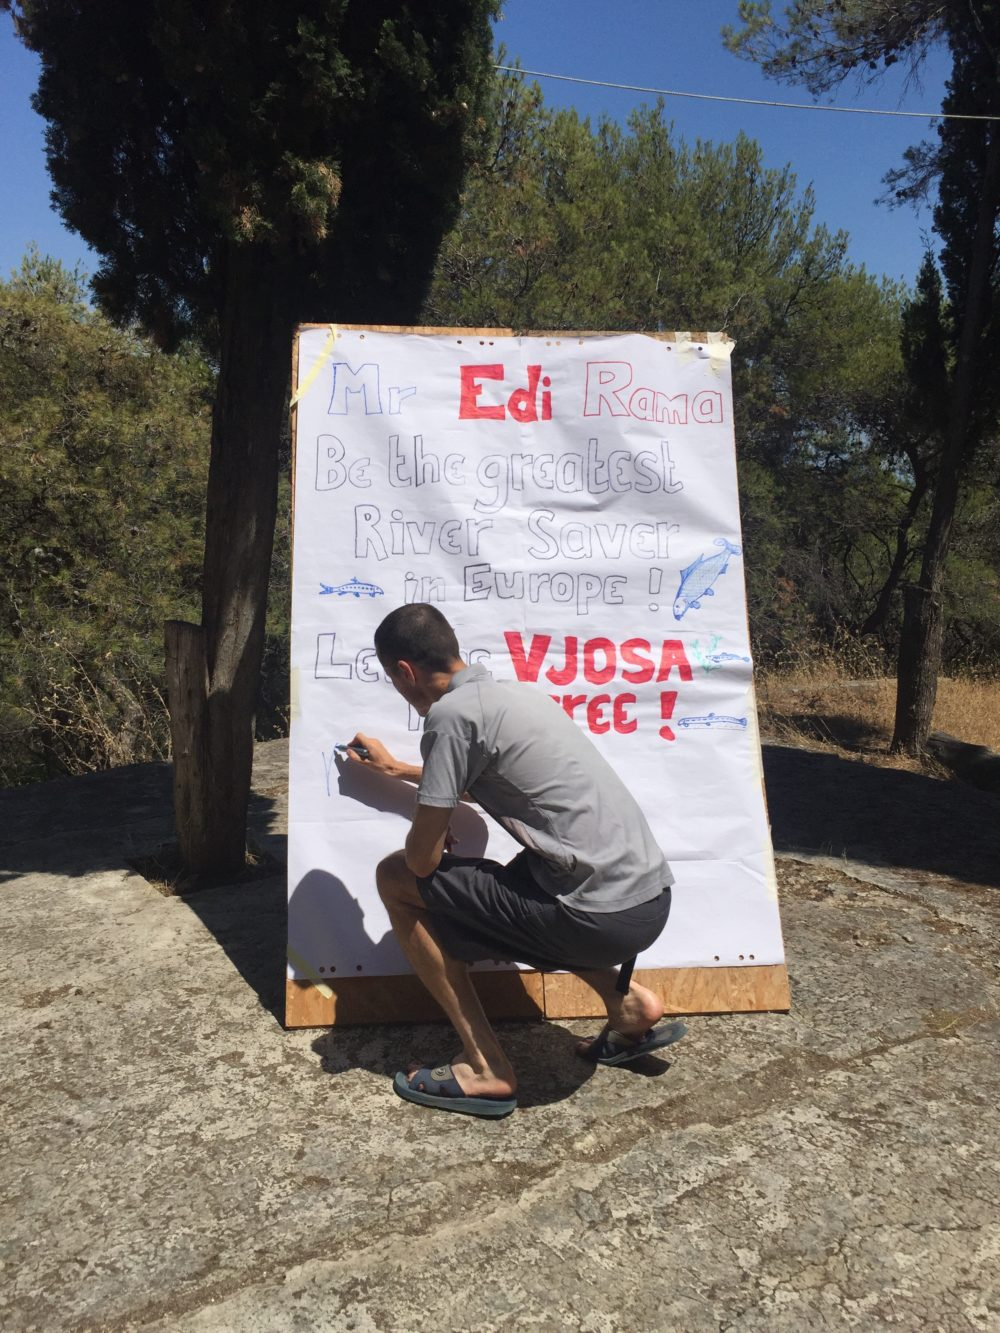 OAA organized a solidarity action in Solta, Croatia to save Vjosa river, where participants  from the Western Balkan region signed a petition for the prime minster of Albania, Edi Rama.